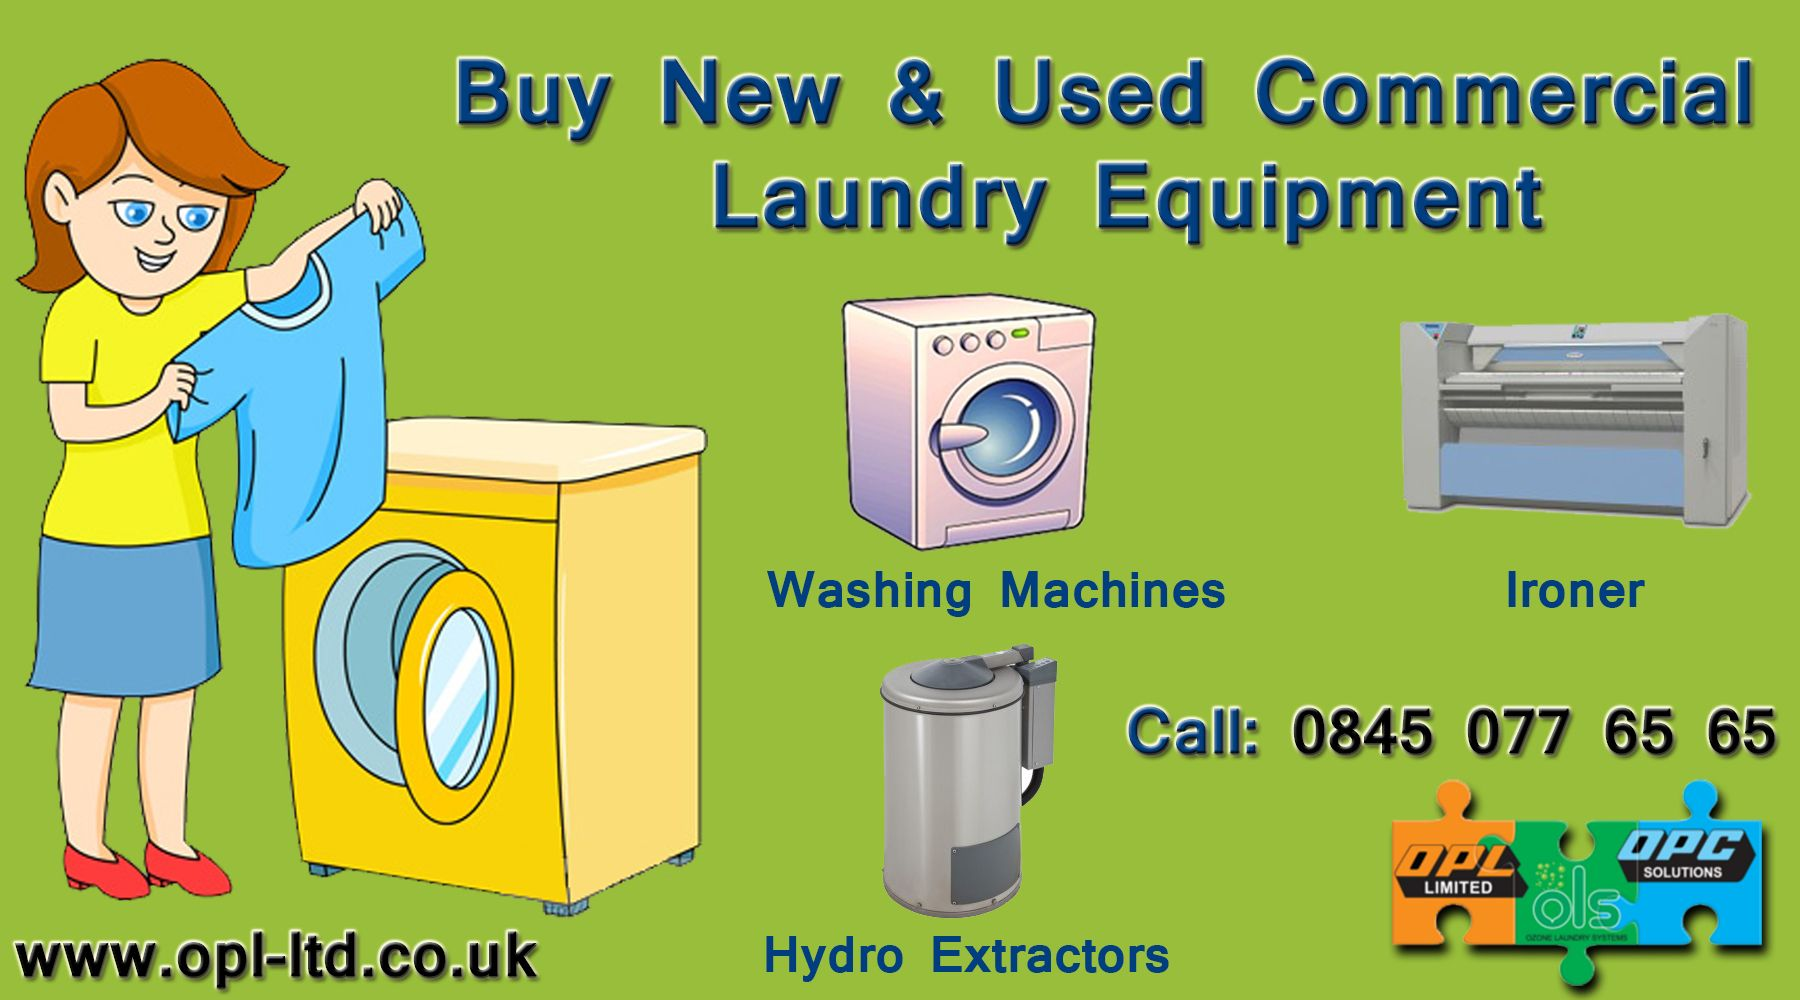 Buy New & Used Commercial Laundry Equipment | Laundry ...